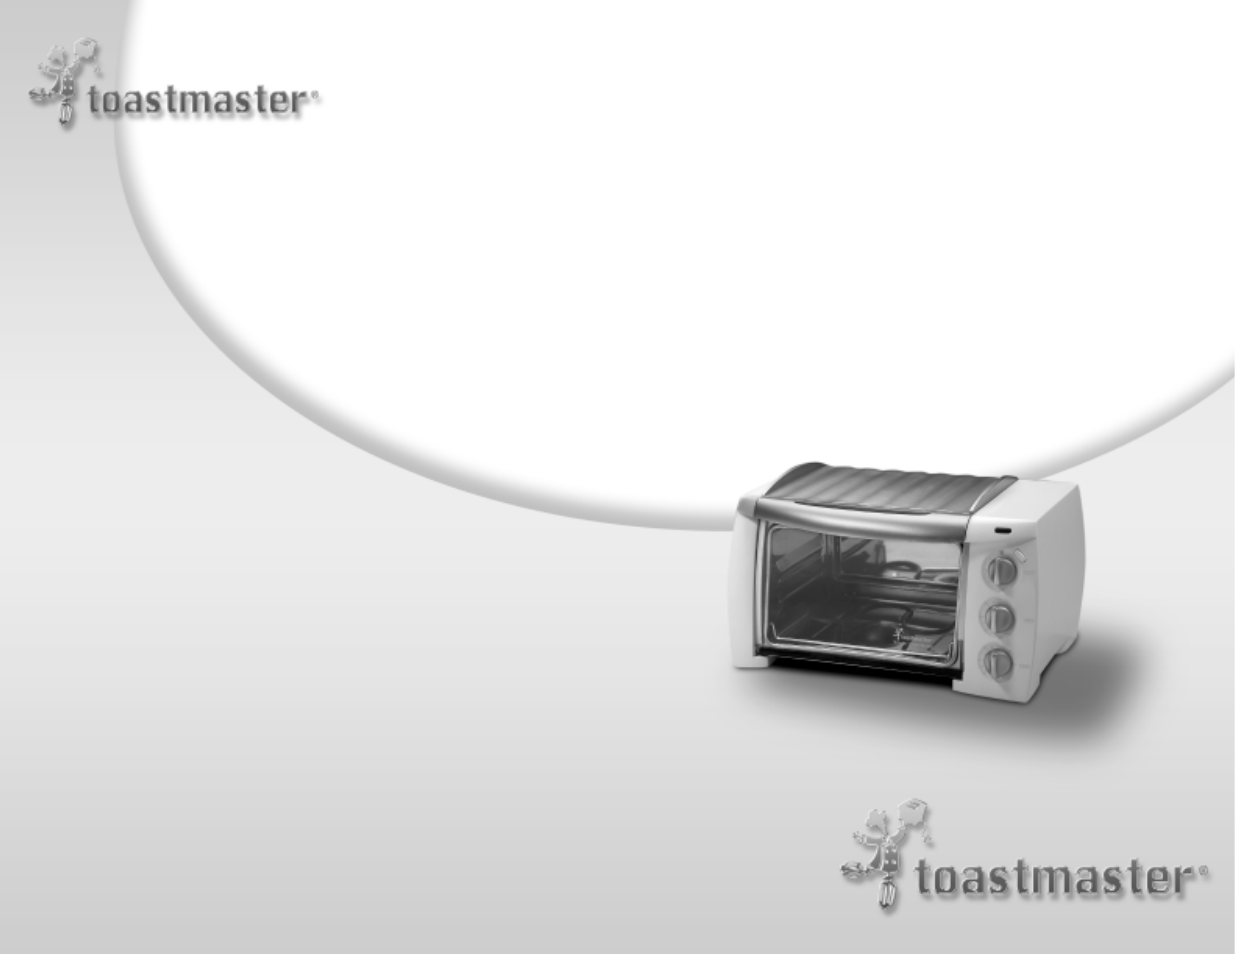 Toastmaster Tov450rl User Manual 26 Pages Wiring Diagram